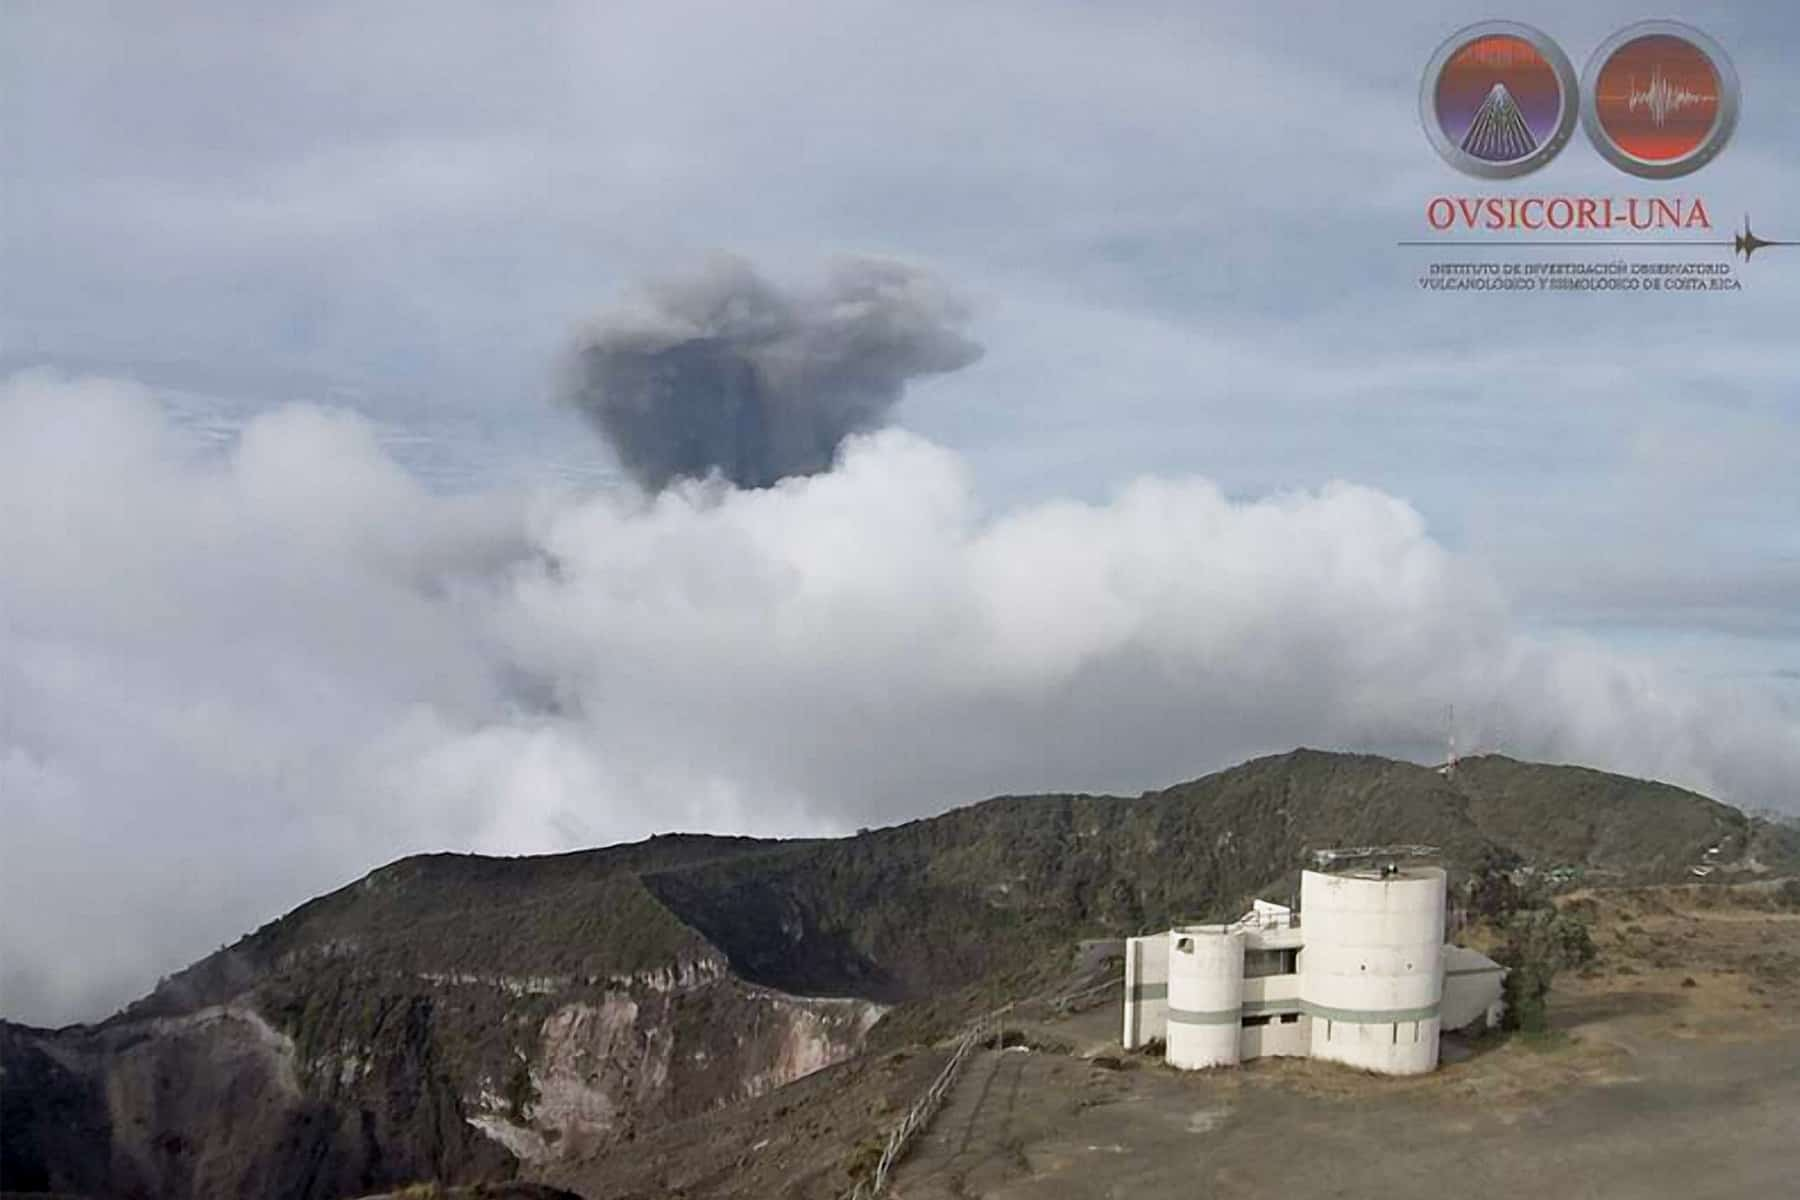 Explosion at Turrialba Volcano, April 21, 2015